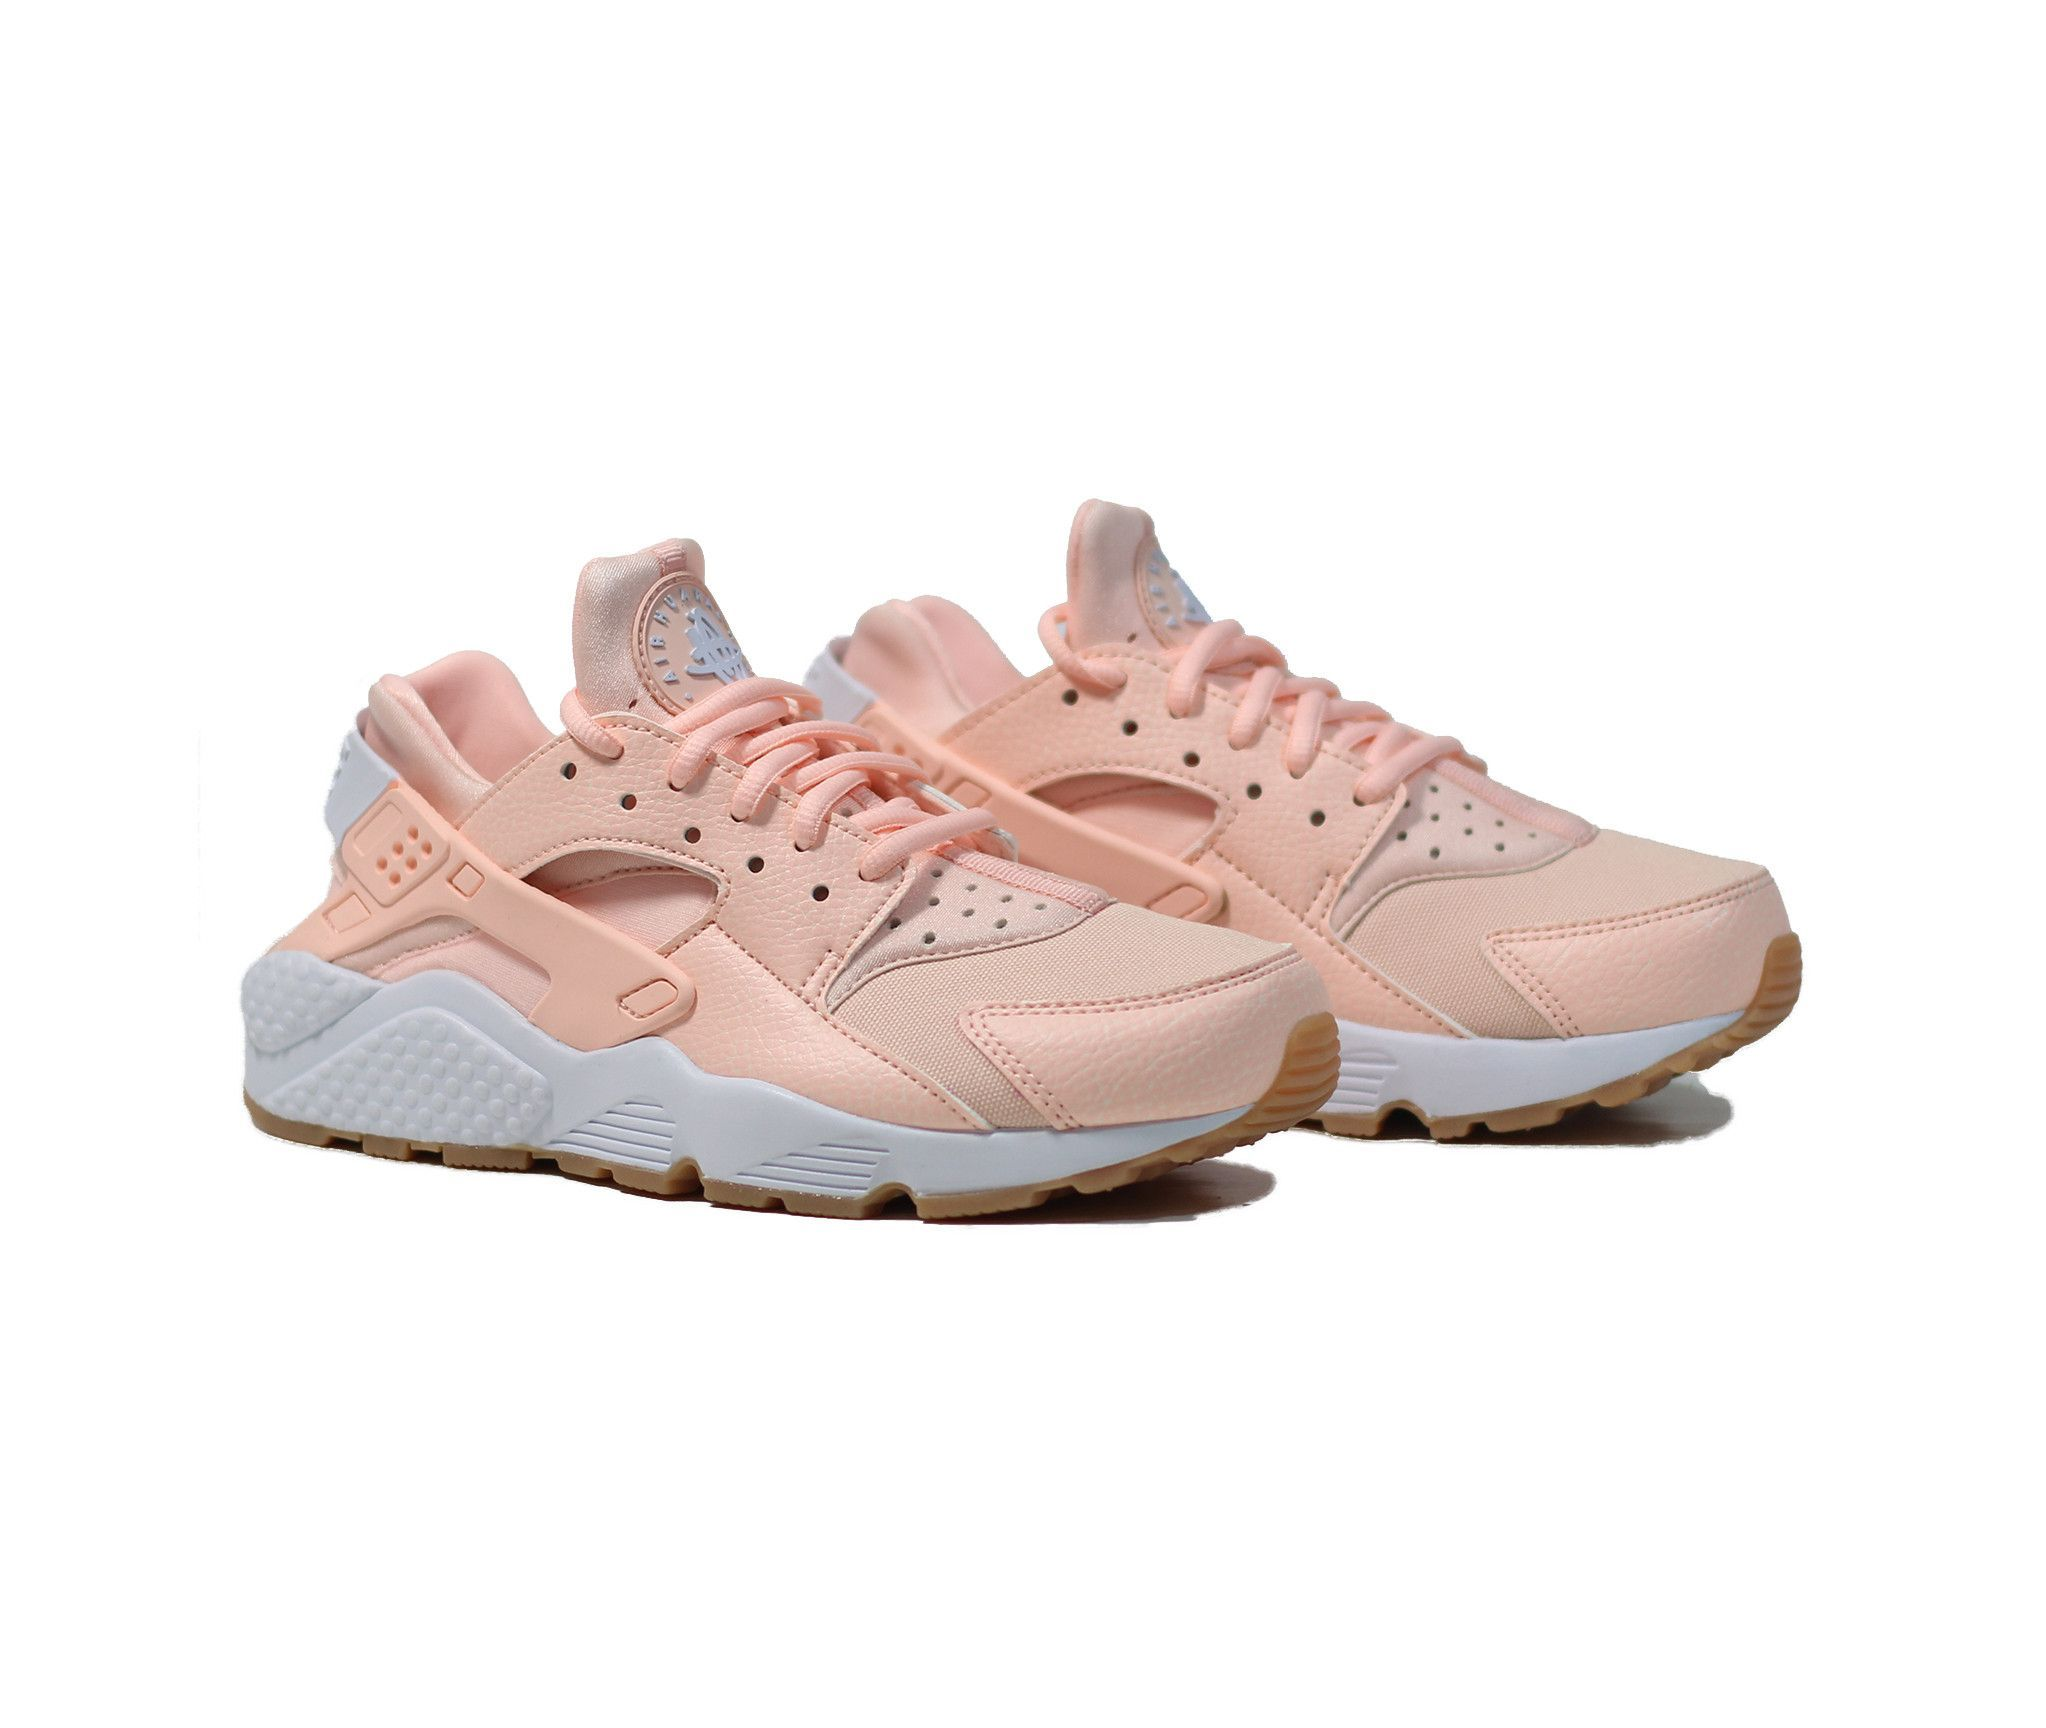 hot sale online 9fb33 82d66 CHANELLE X ROSEGOLD NIKE Women's Air Huarache - Suntset Tint ...